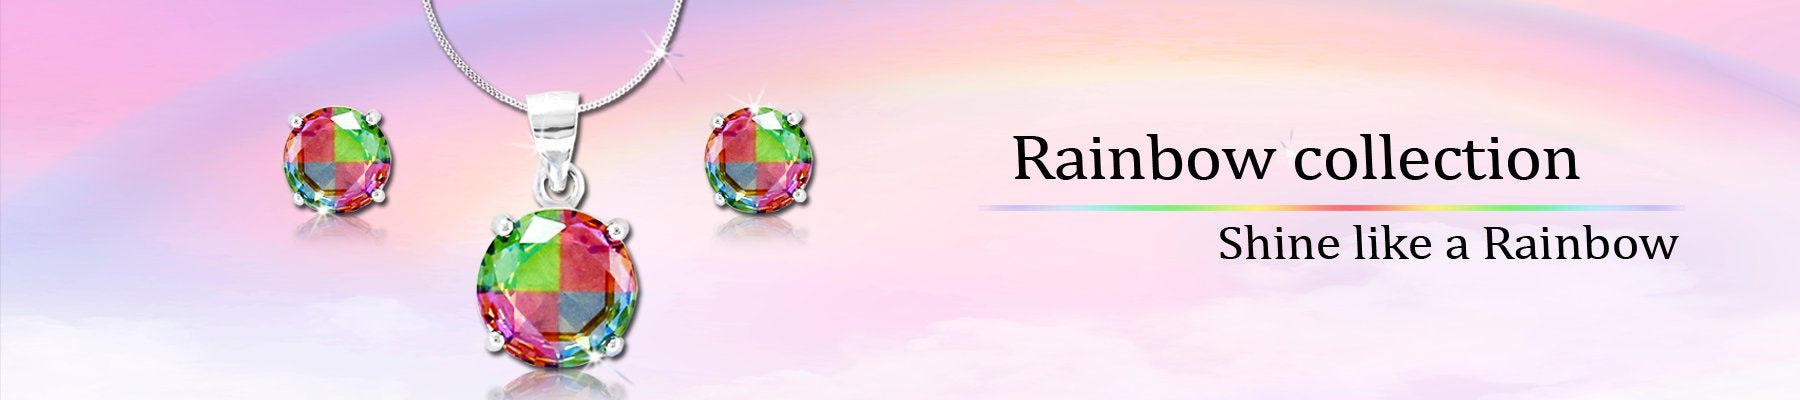 Taraash Earrings Offer